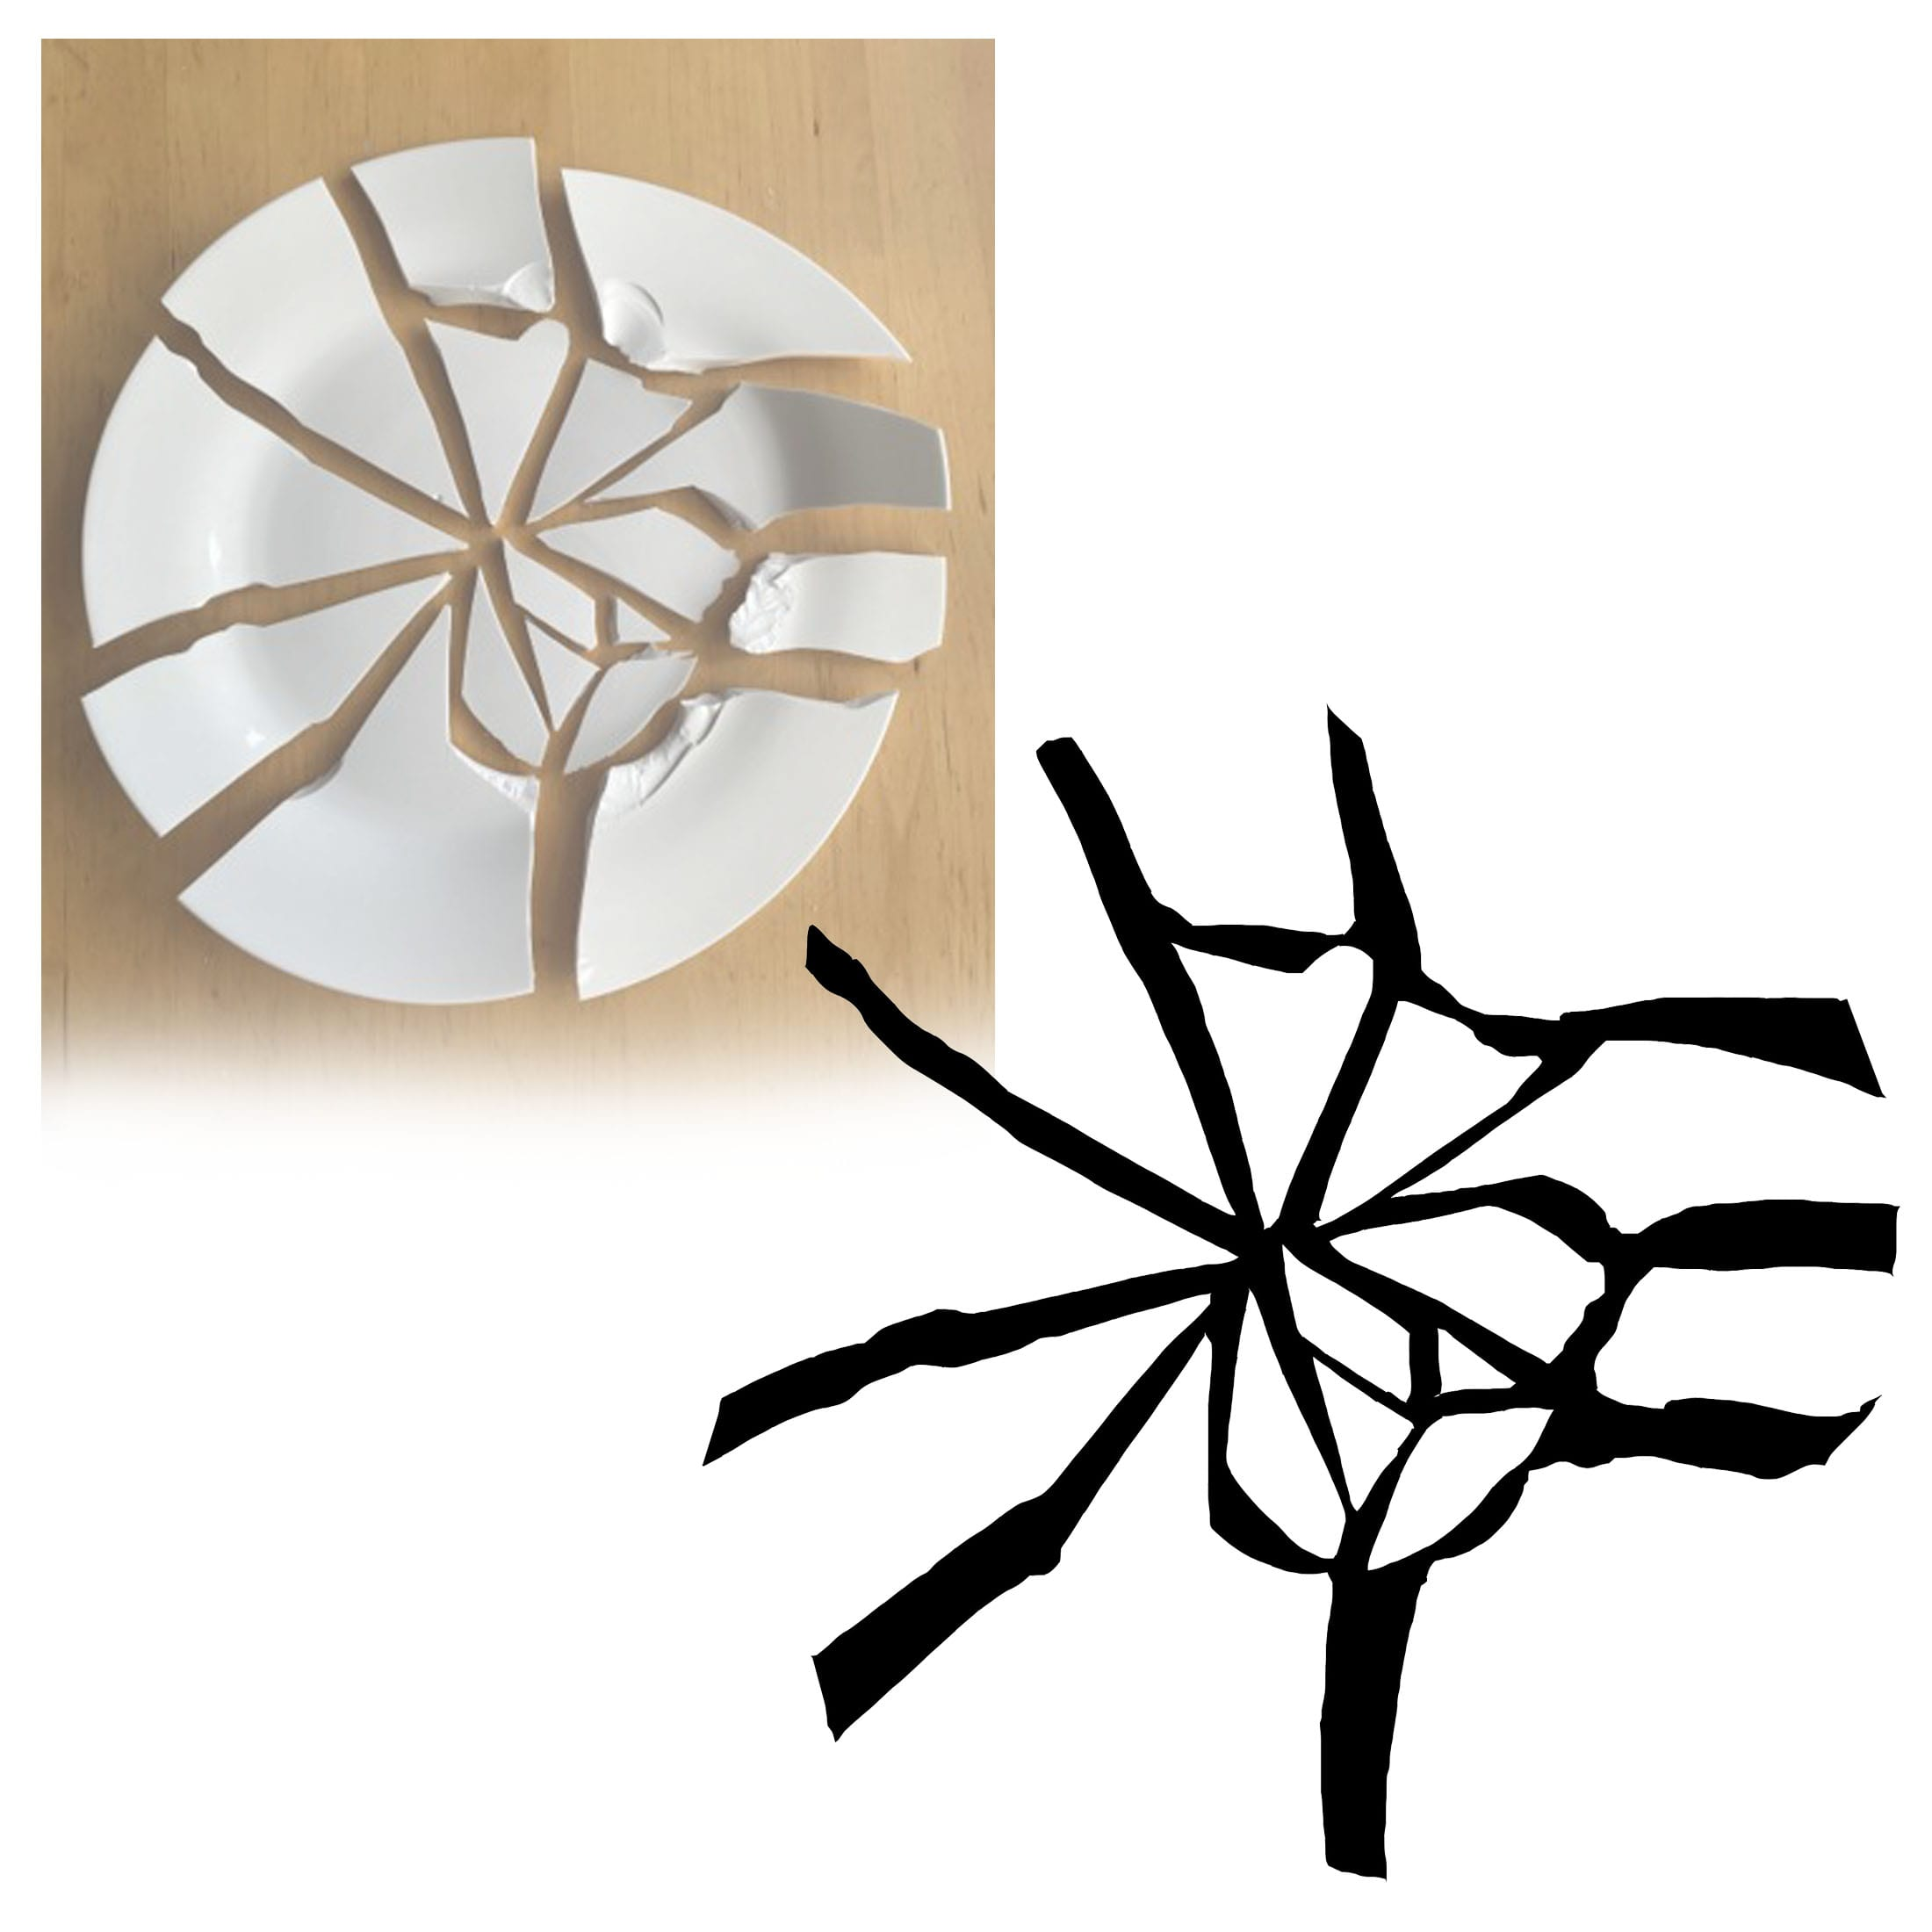 A collage of a broken plate and a black outline of the break created in the plate.